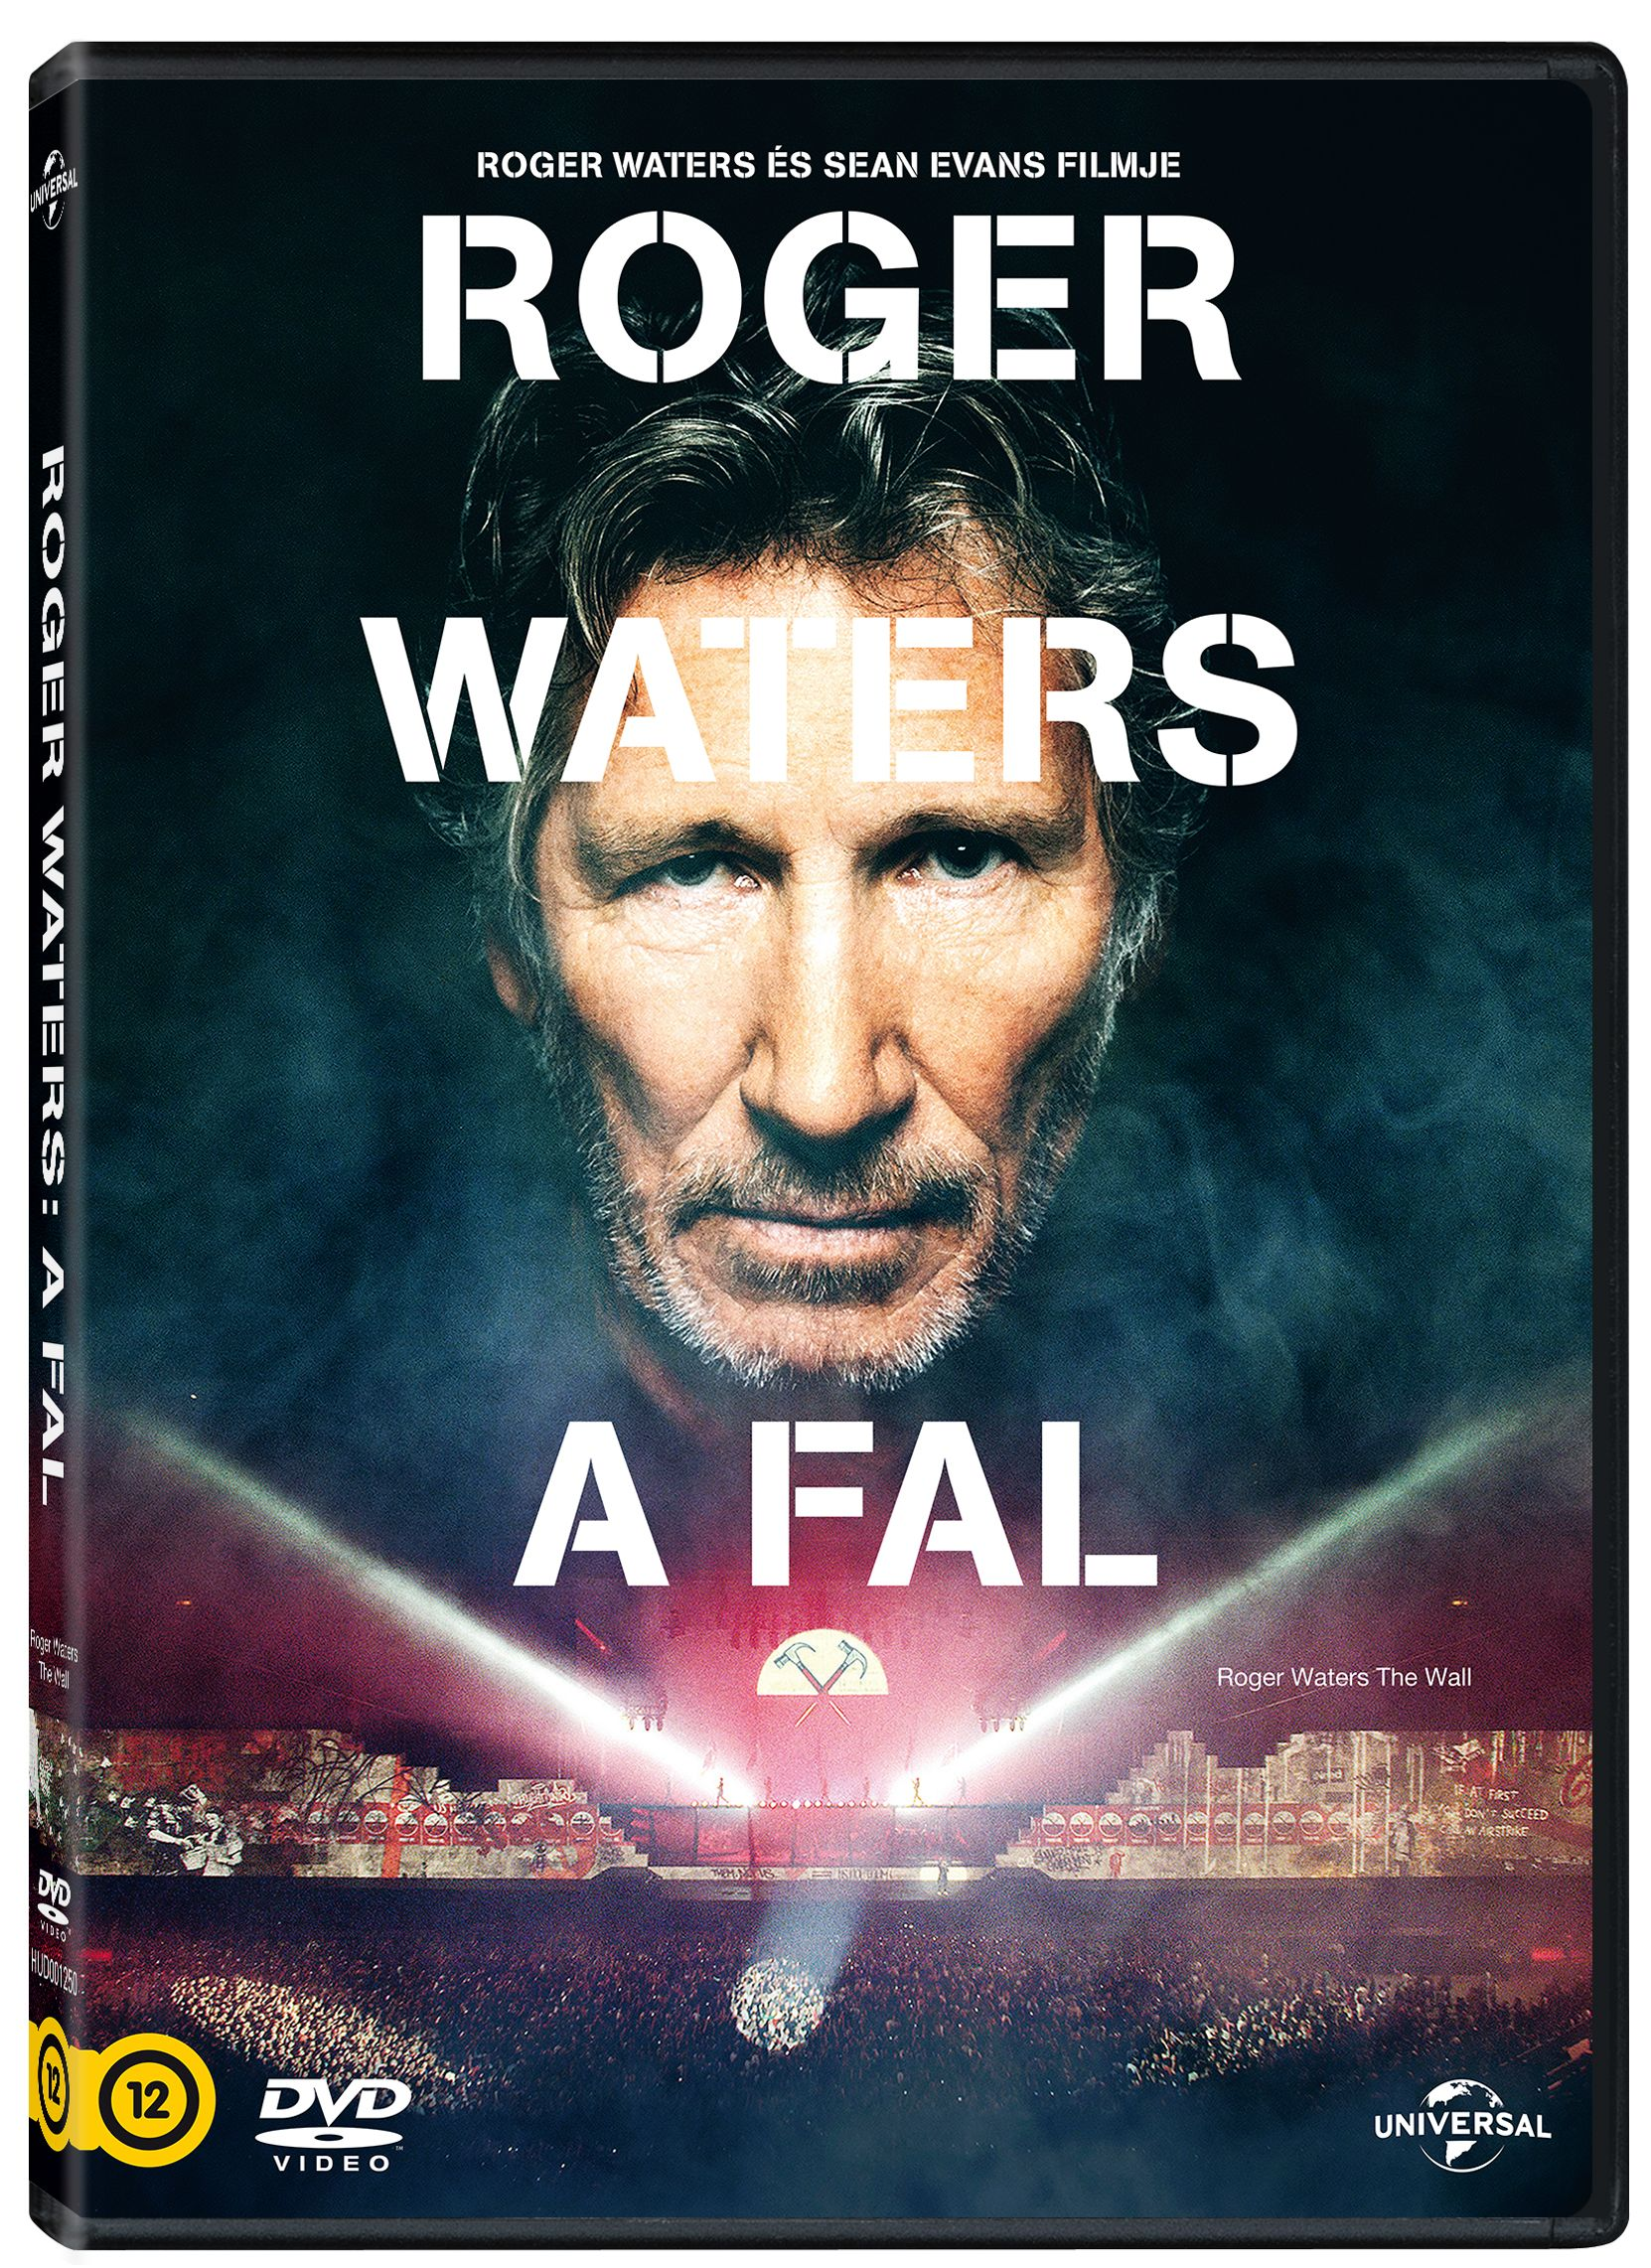 Roger Waters: A fal DVD